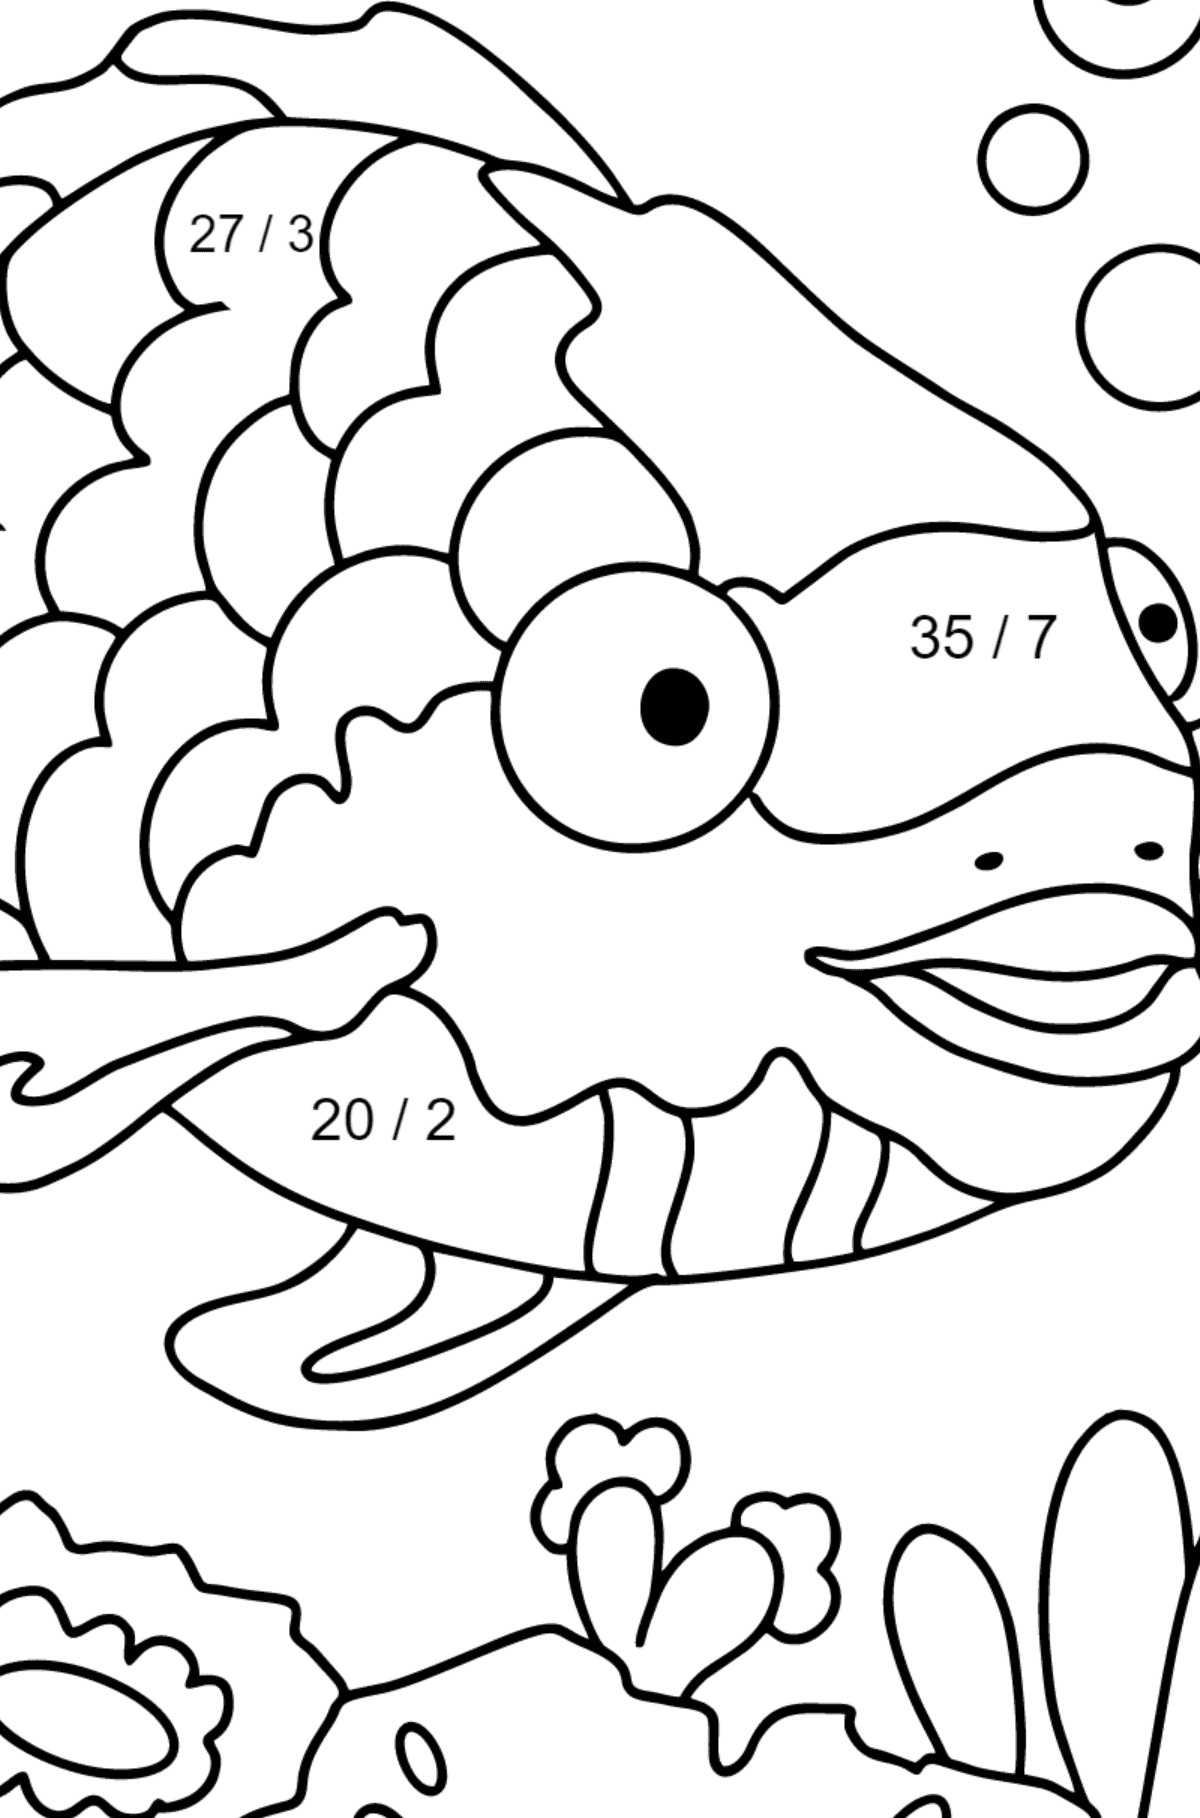 Coloring Page - A Fish with Multicolored Scales - Math Coloring - Division for Kids